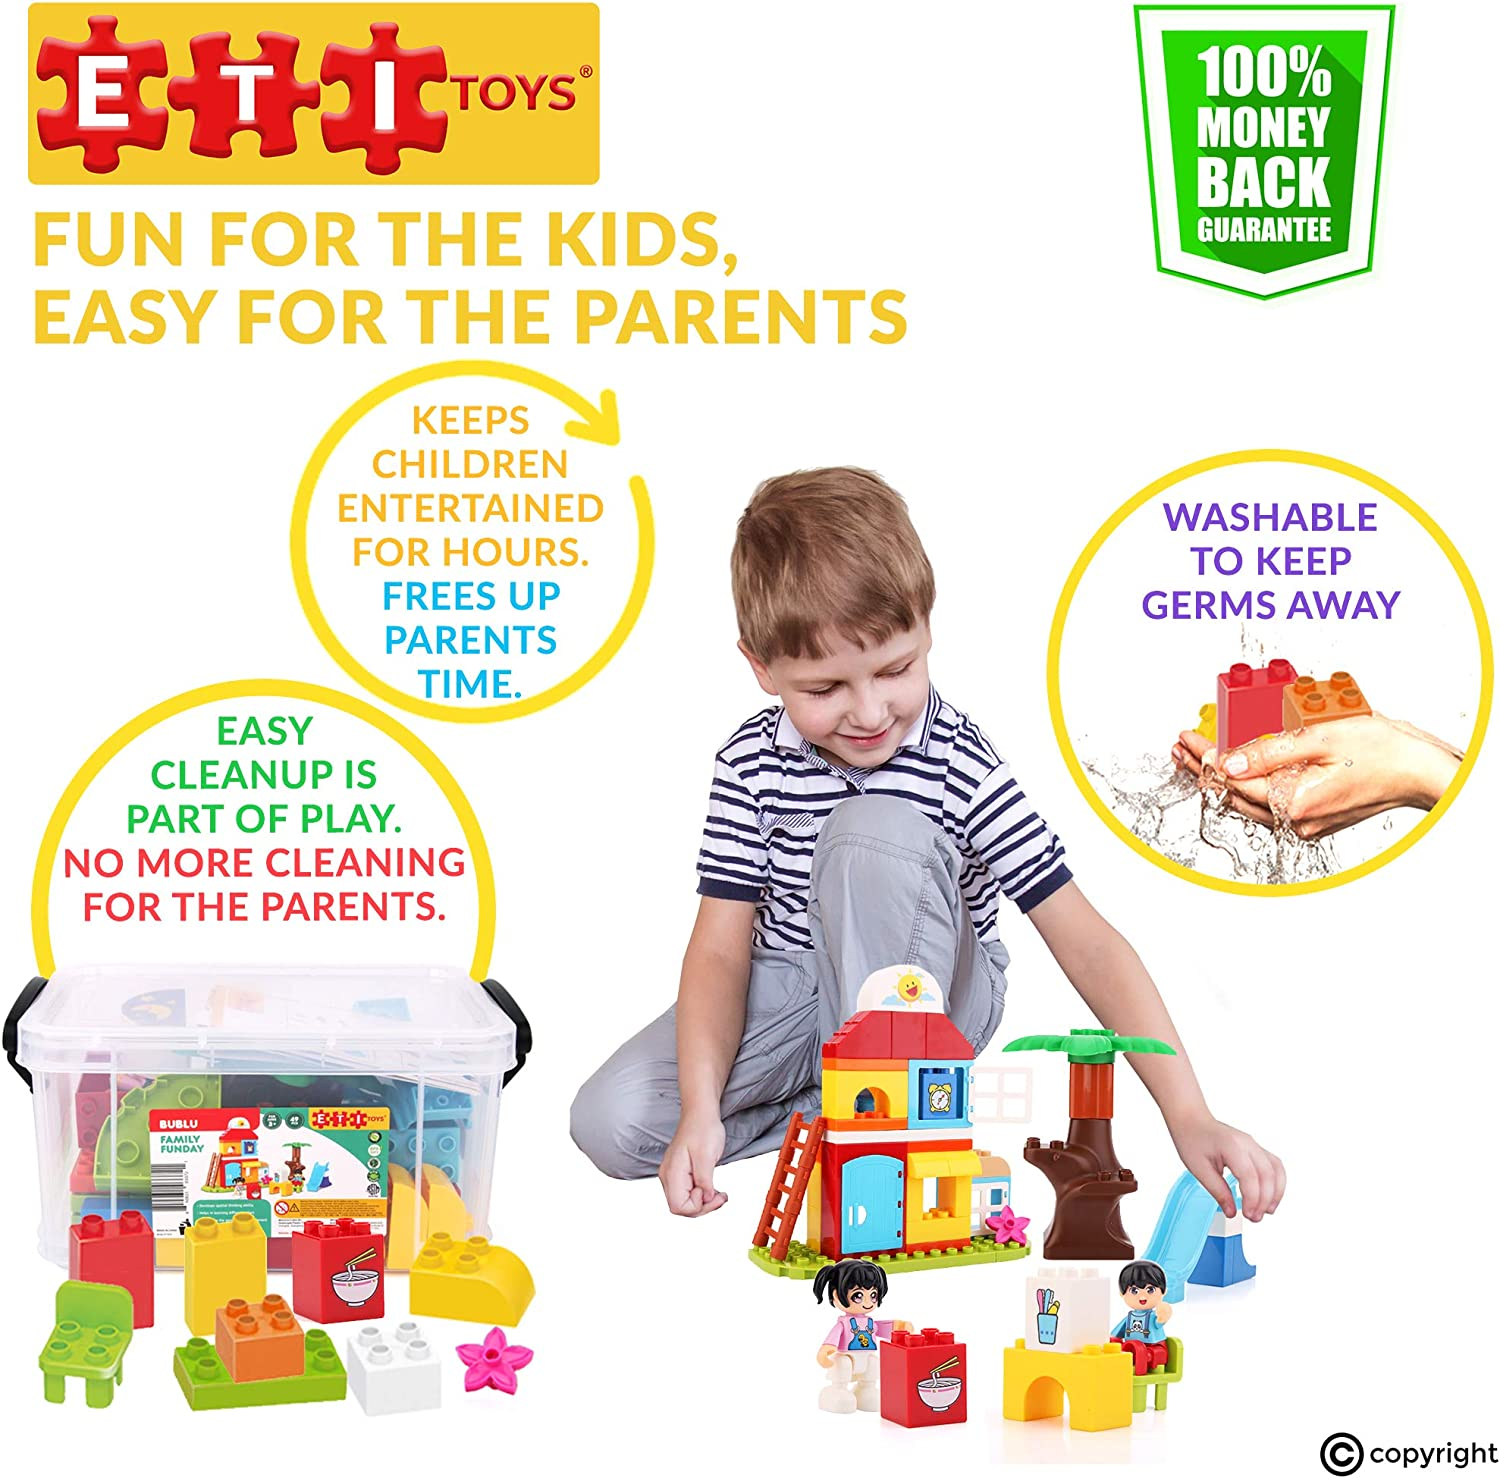 Toy for 3 100 Percent Safe Cozy Home Gift Creative Skills Development 4 49 Piece Bublu Family Funday Building Blocks Fun Slide ETI Toys Build Backyard Cookout 5 Year Old Boys and Girls